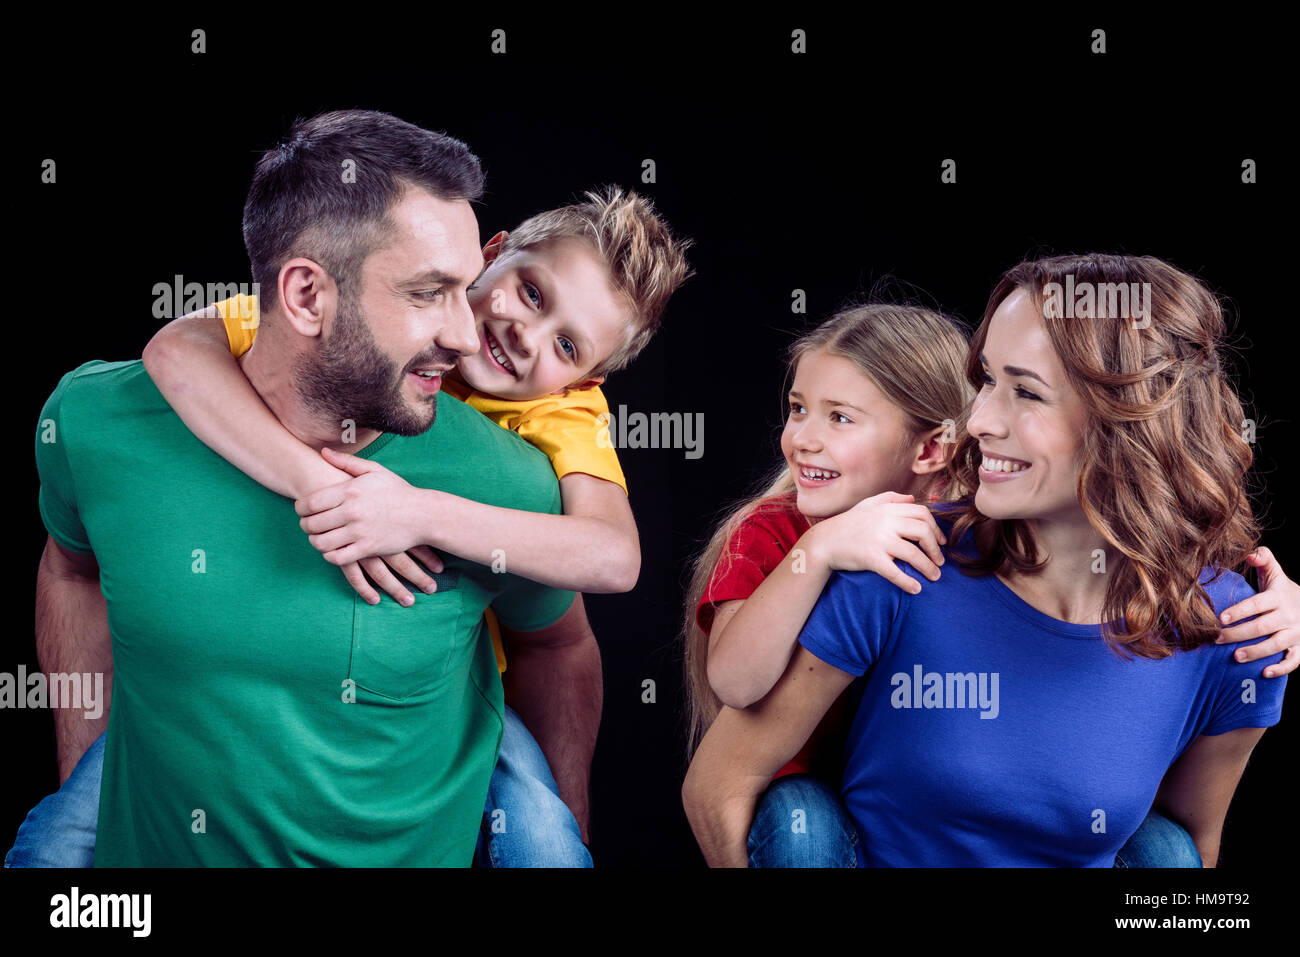 Famille heureuse de t-shirts colorés Photo Stock